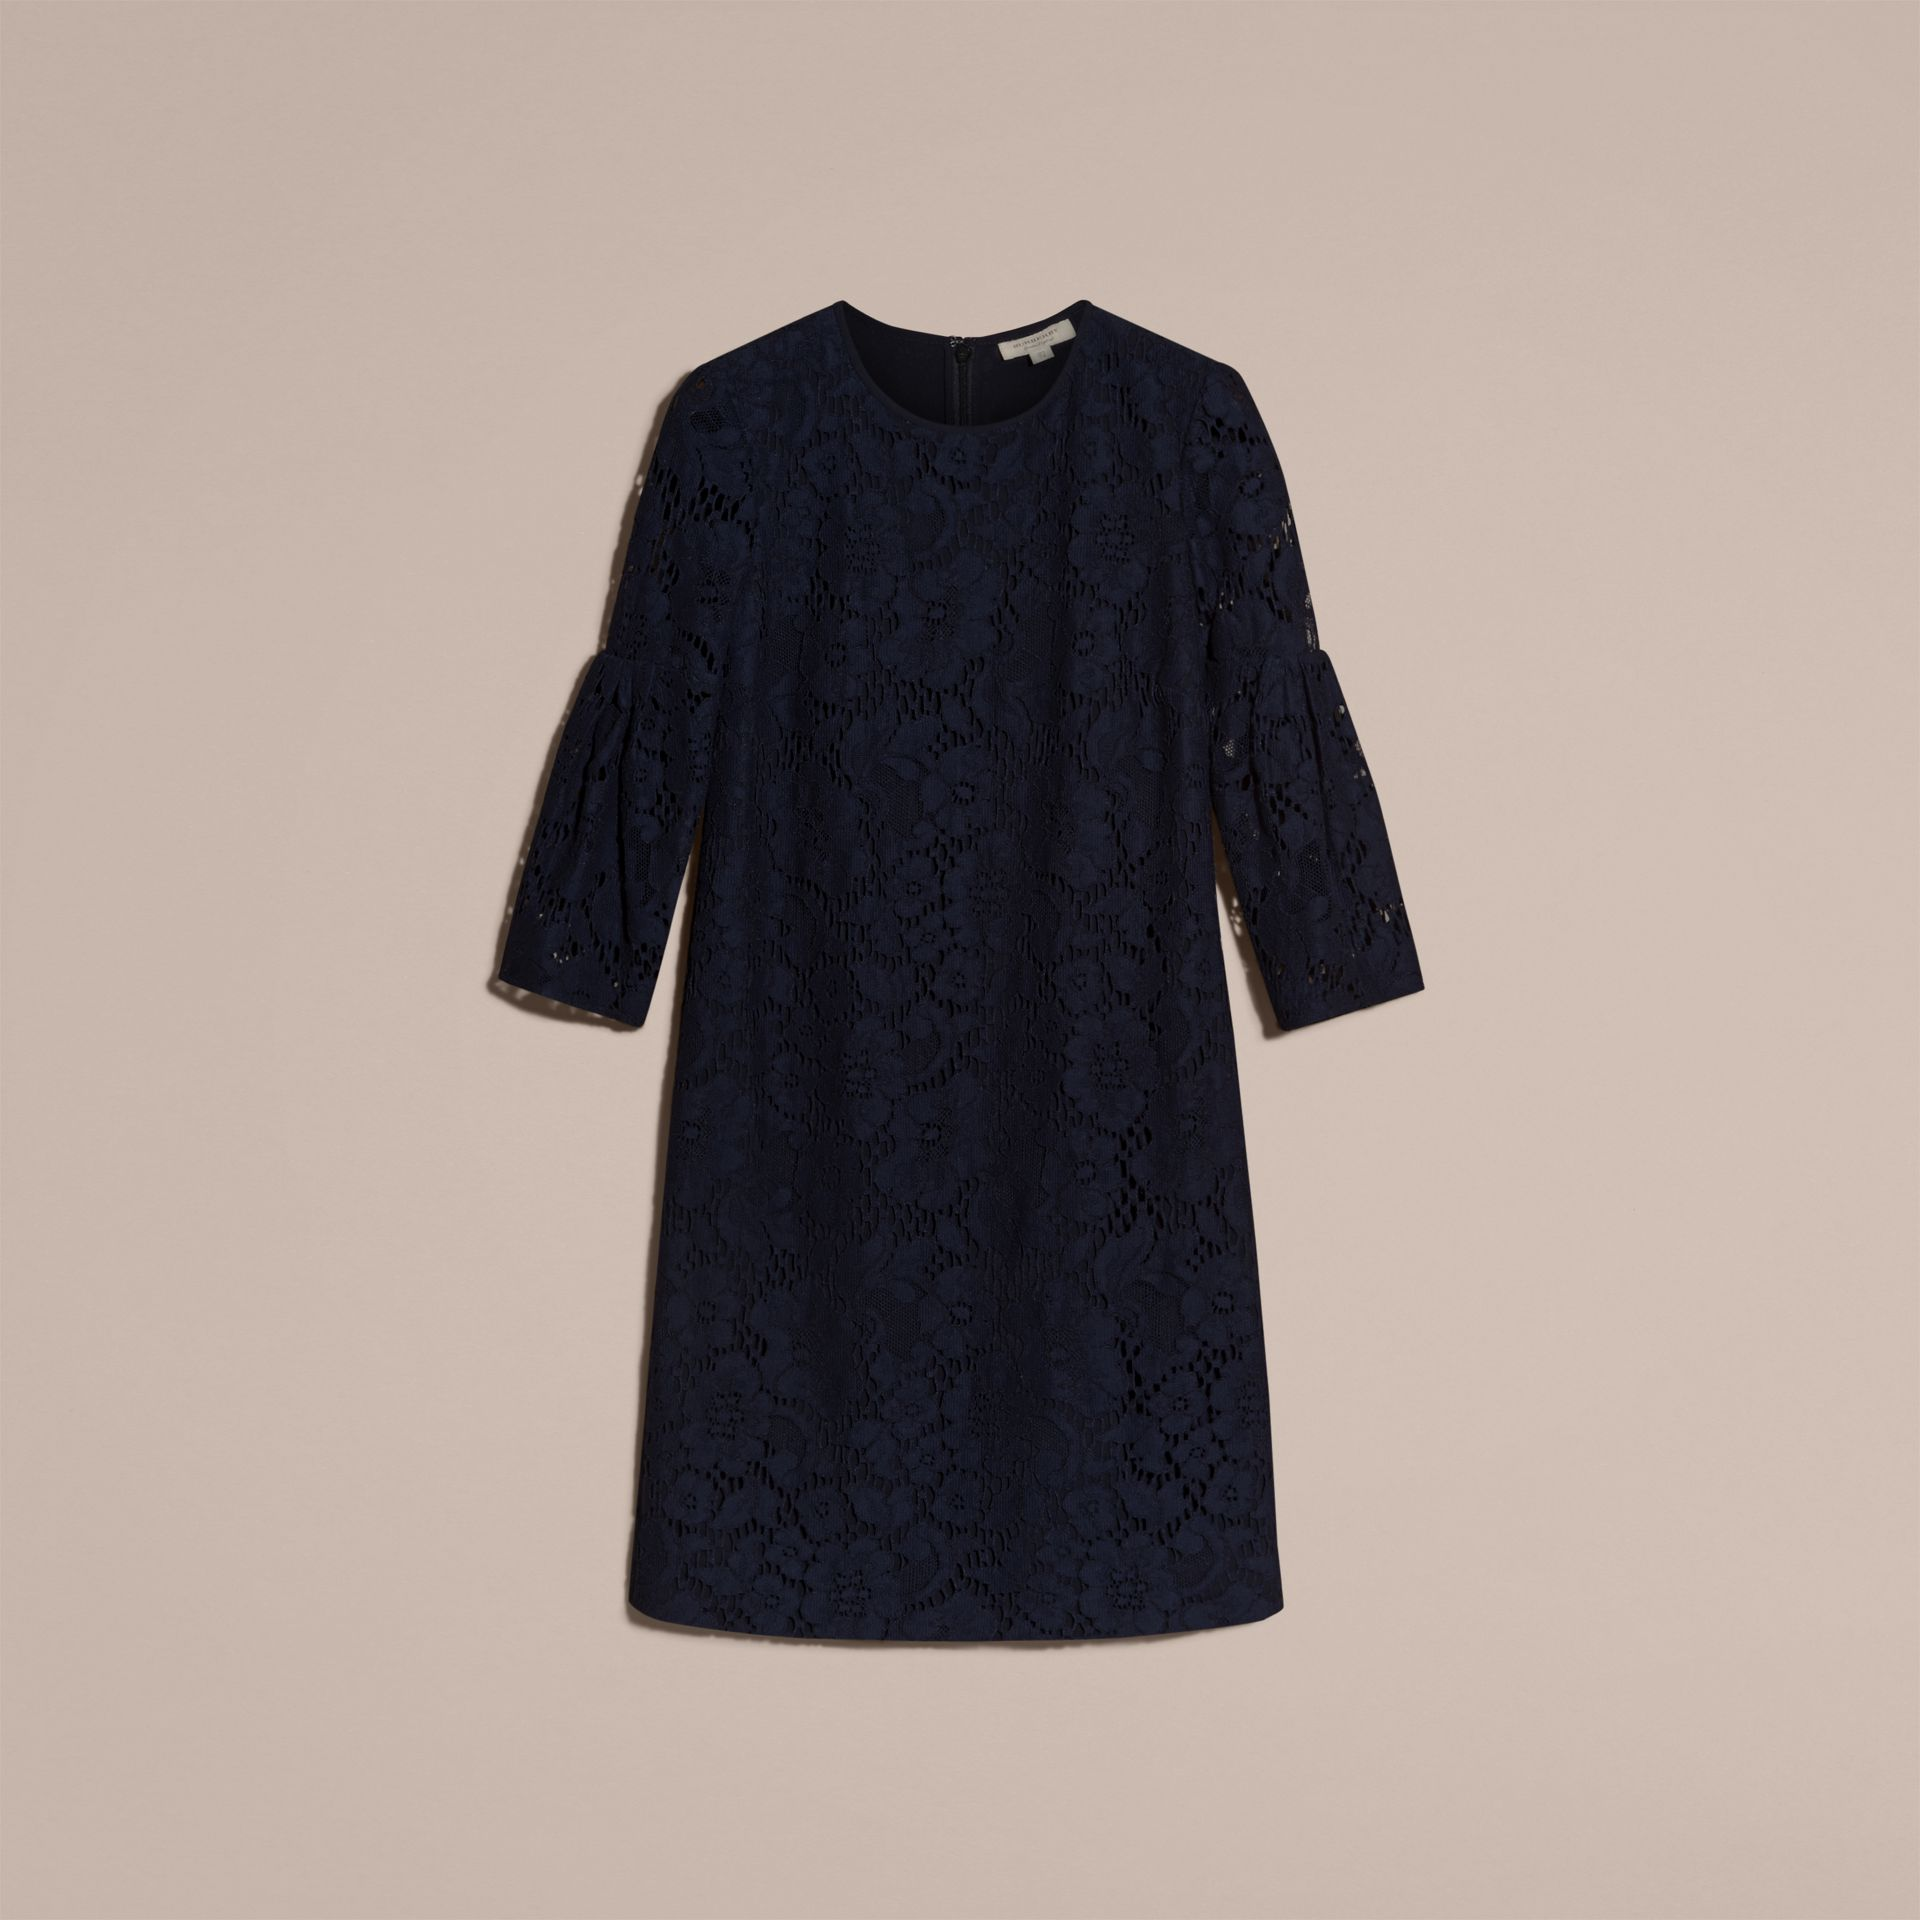 Navy Puff-sleeved Floral Lace Shift Dress Navy - gallery image 4